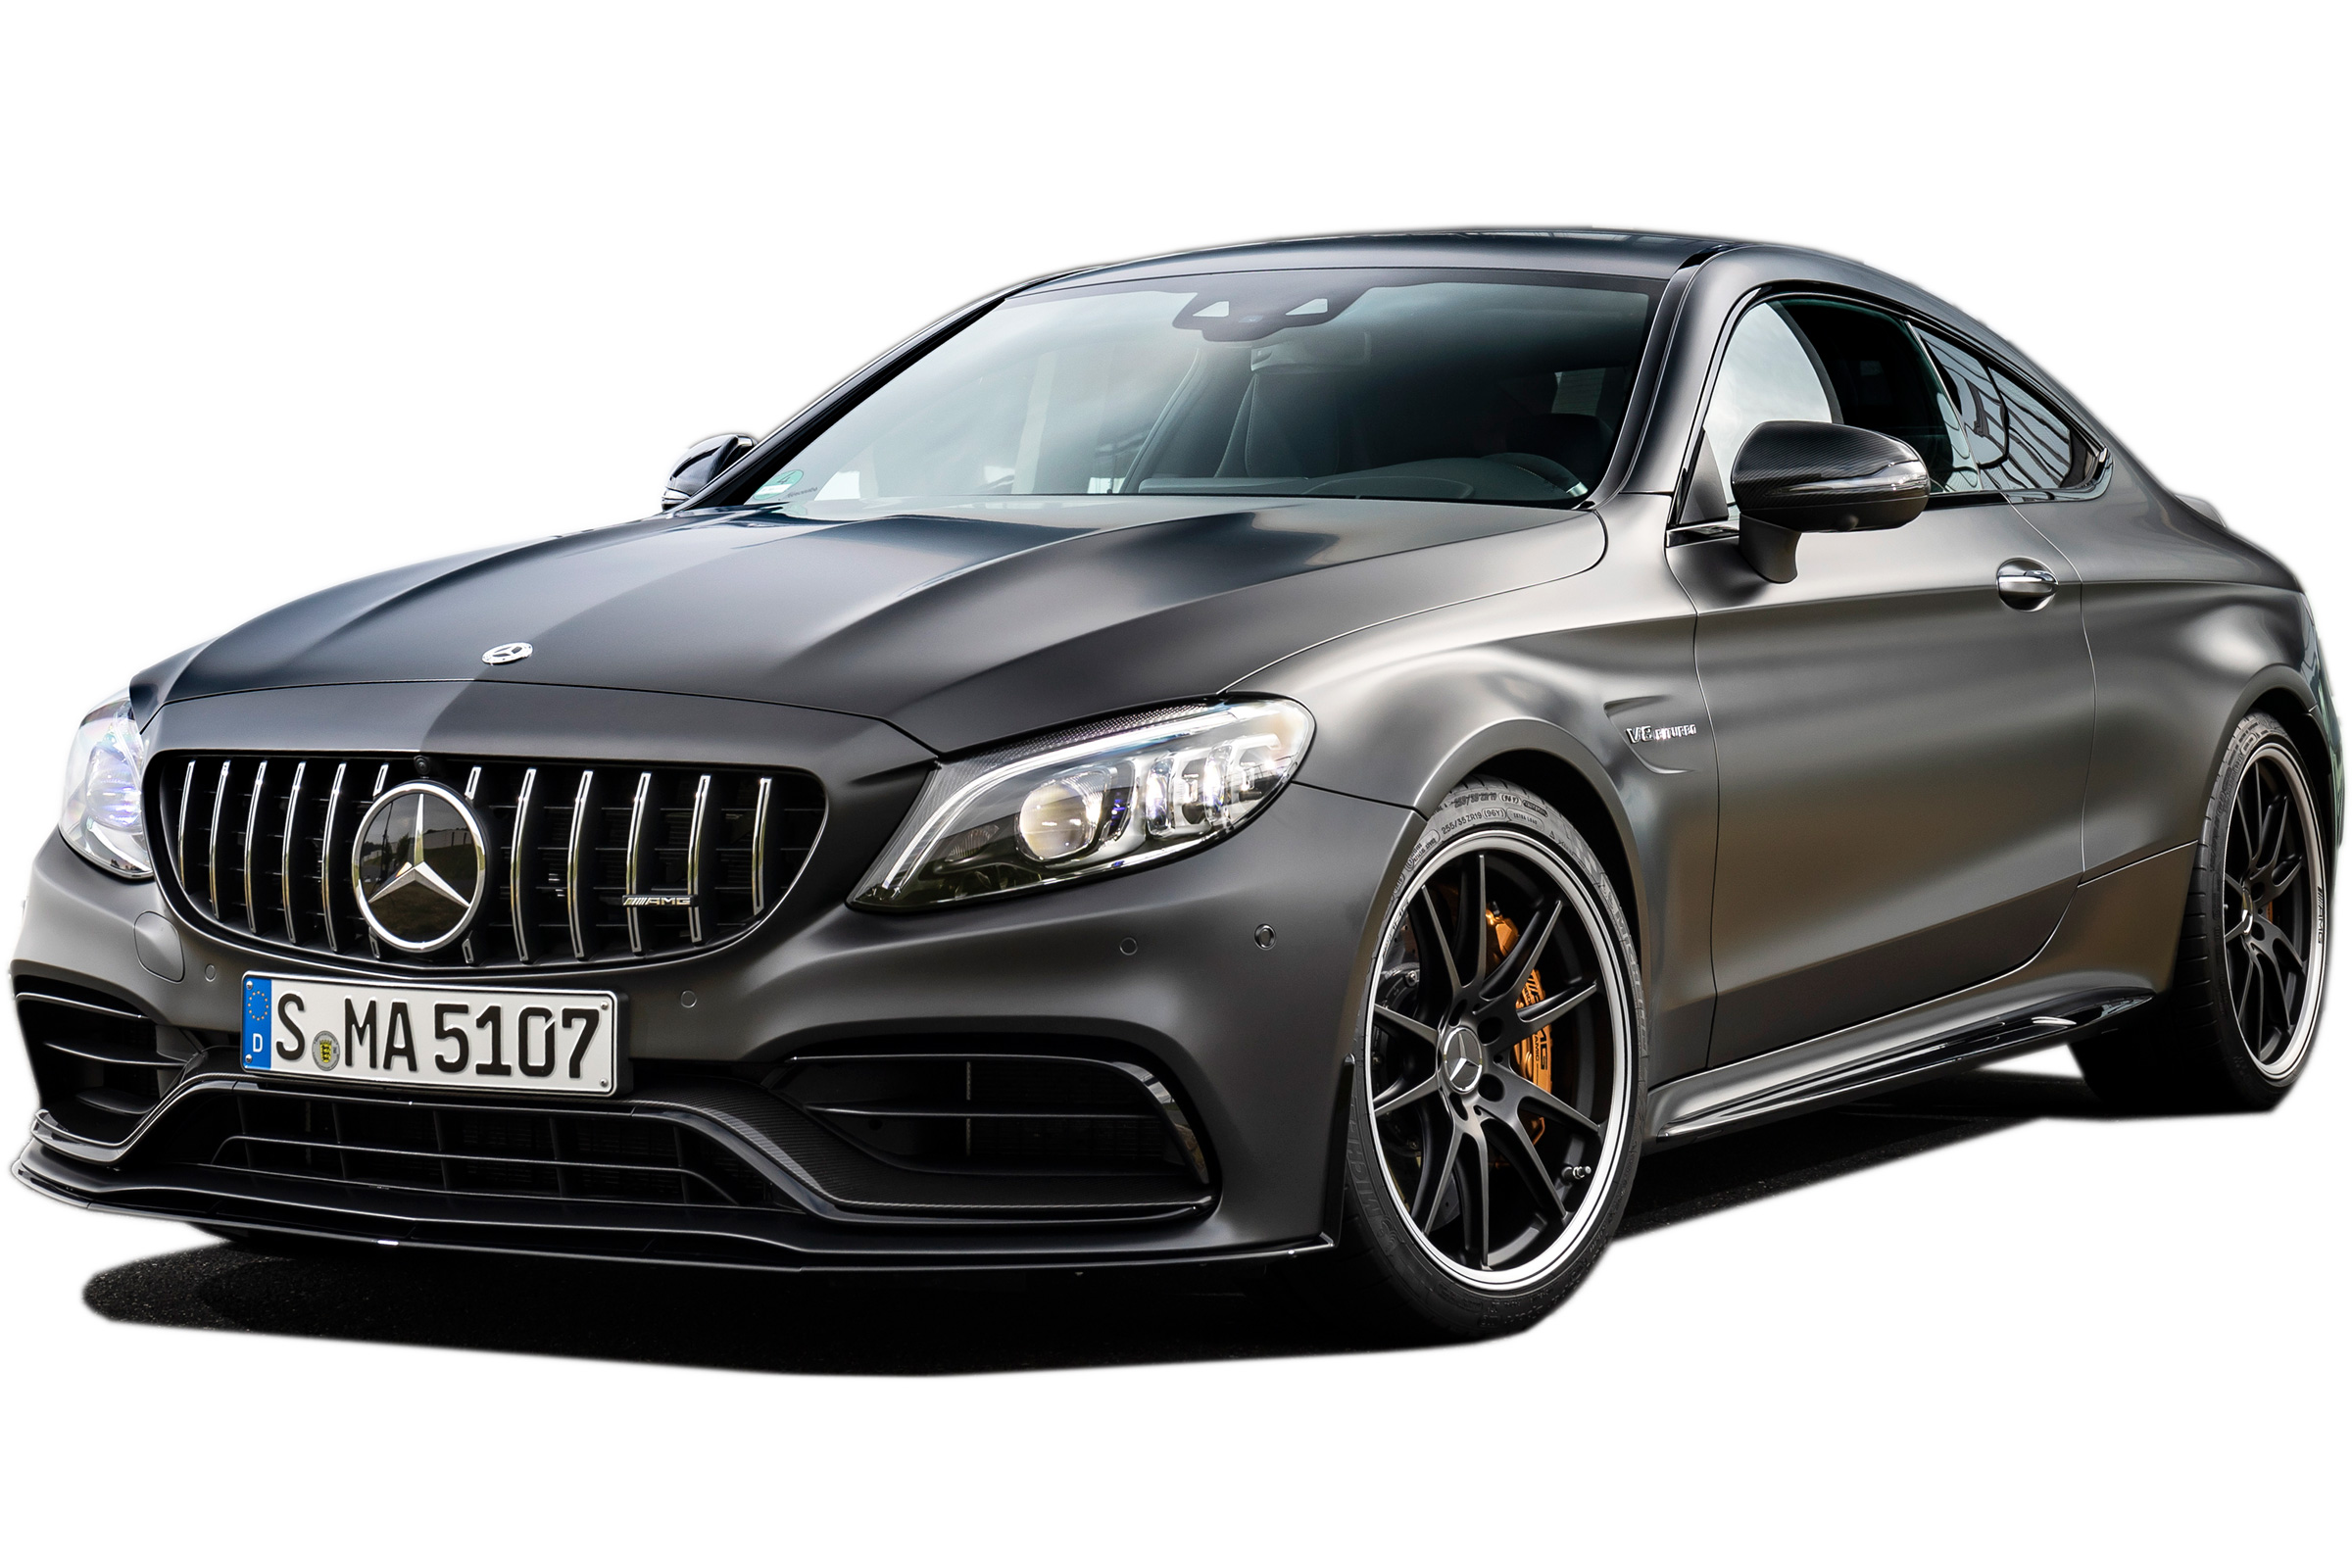 Mercedes Amg C63 Coupe 2020 Review Carbuyer